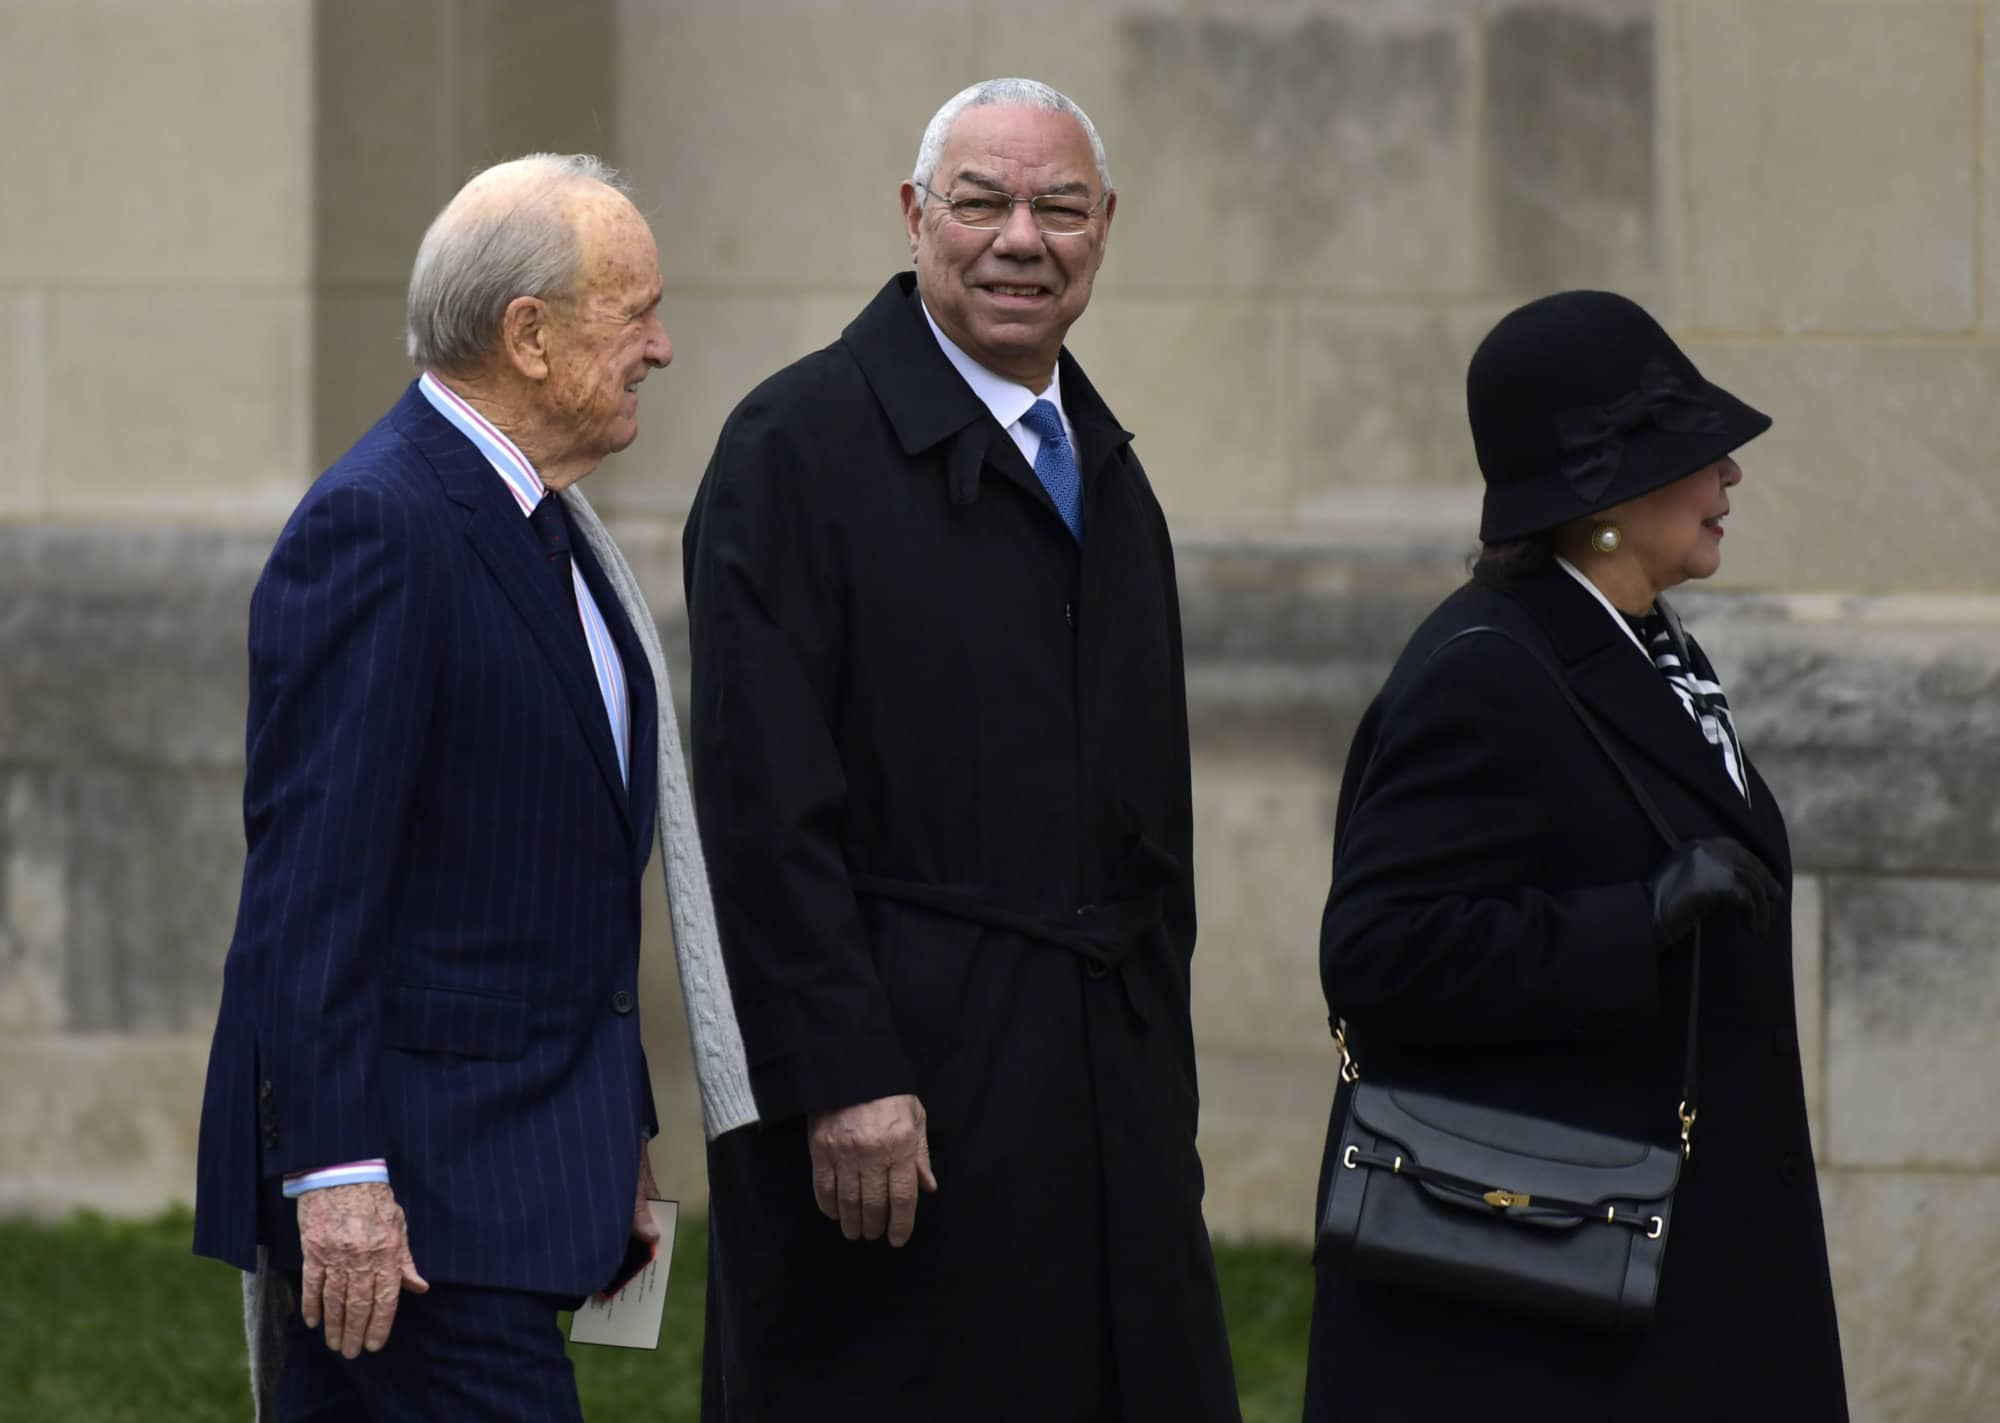 Former Secretary of State Colin Powell, center, arrives for the State Funeral of former President George H.W. Bush at the National Cathedral in Washington, Wednesday, Dec. 5, 2018. (AP Photo/Susan Walsh)